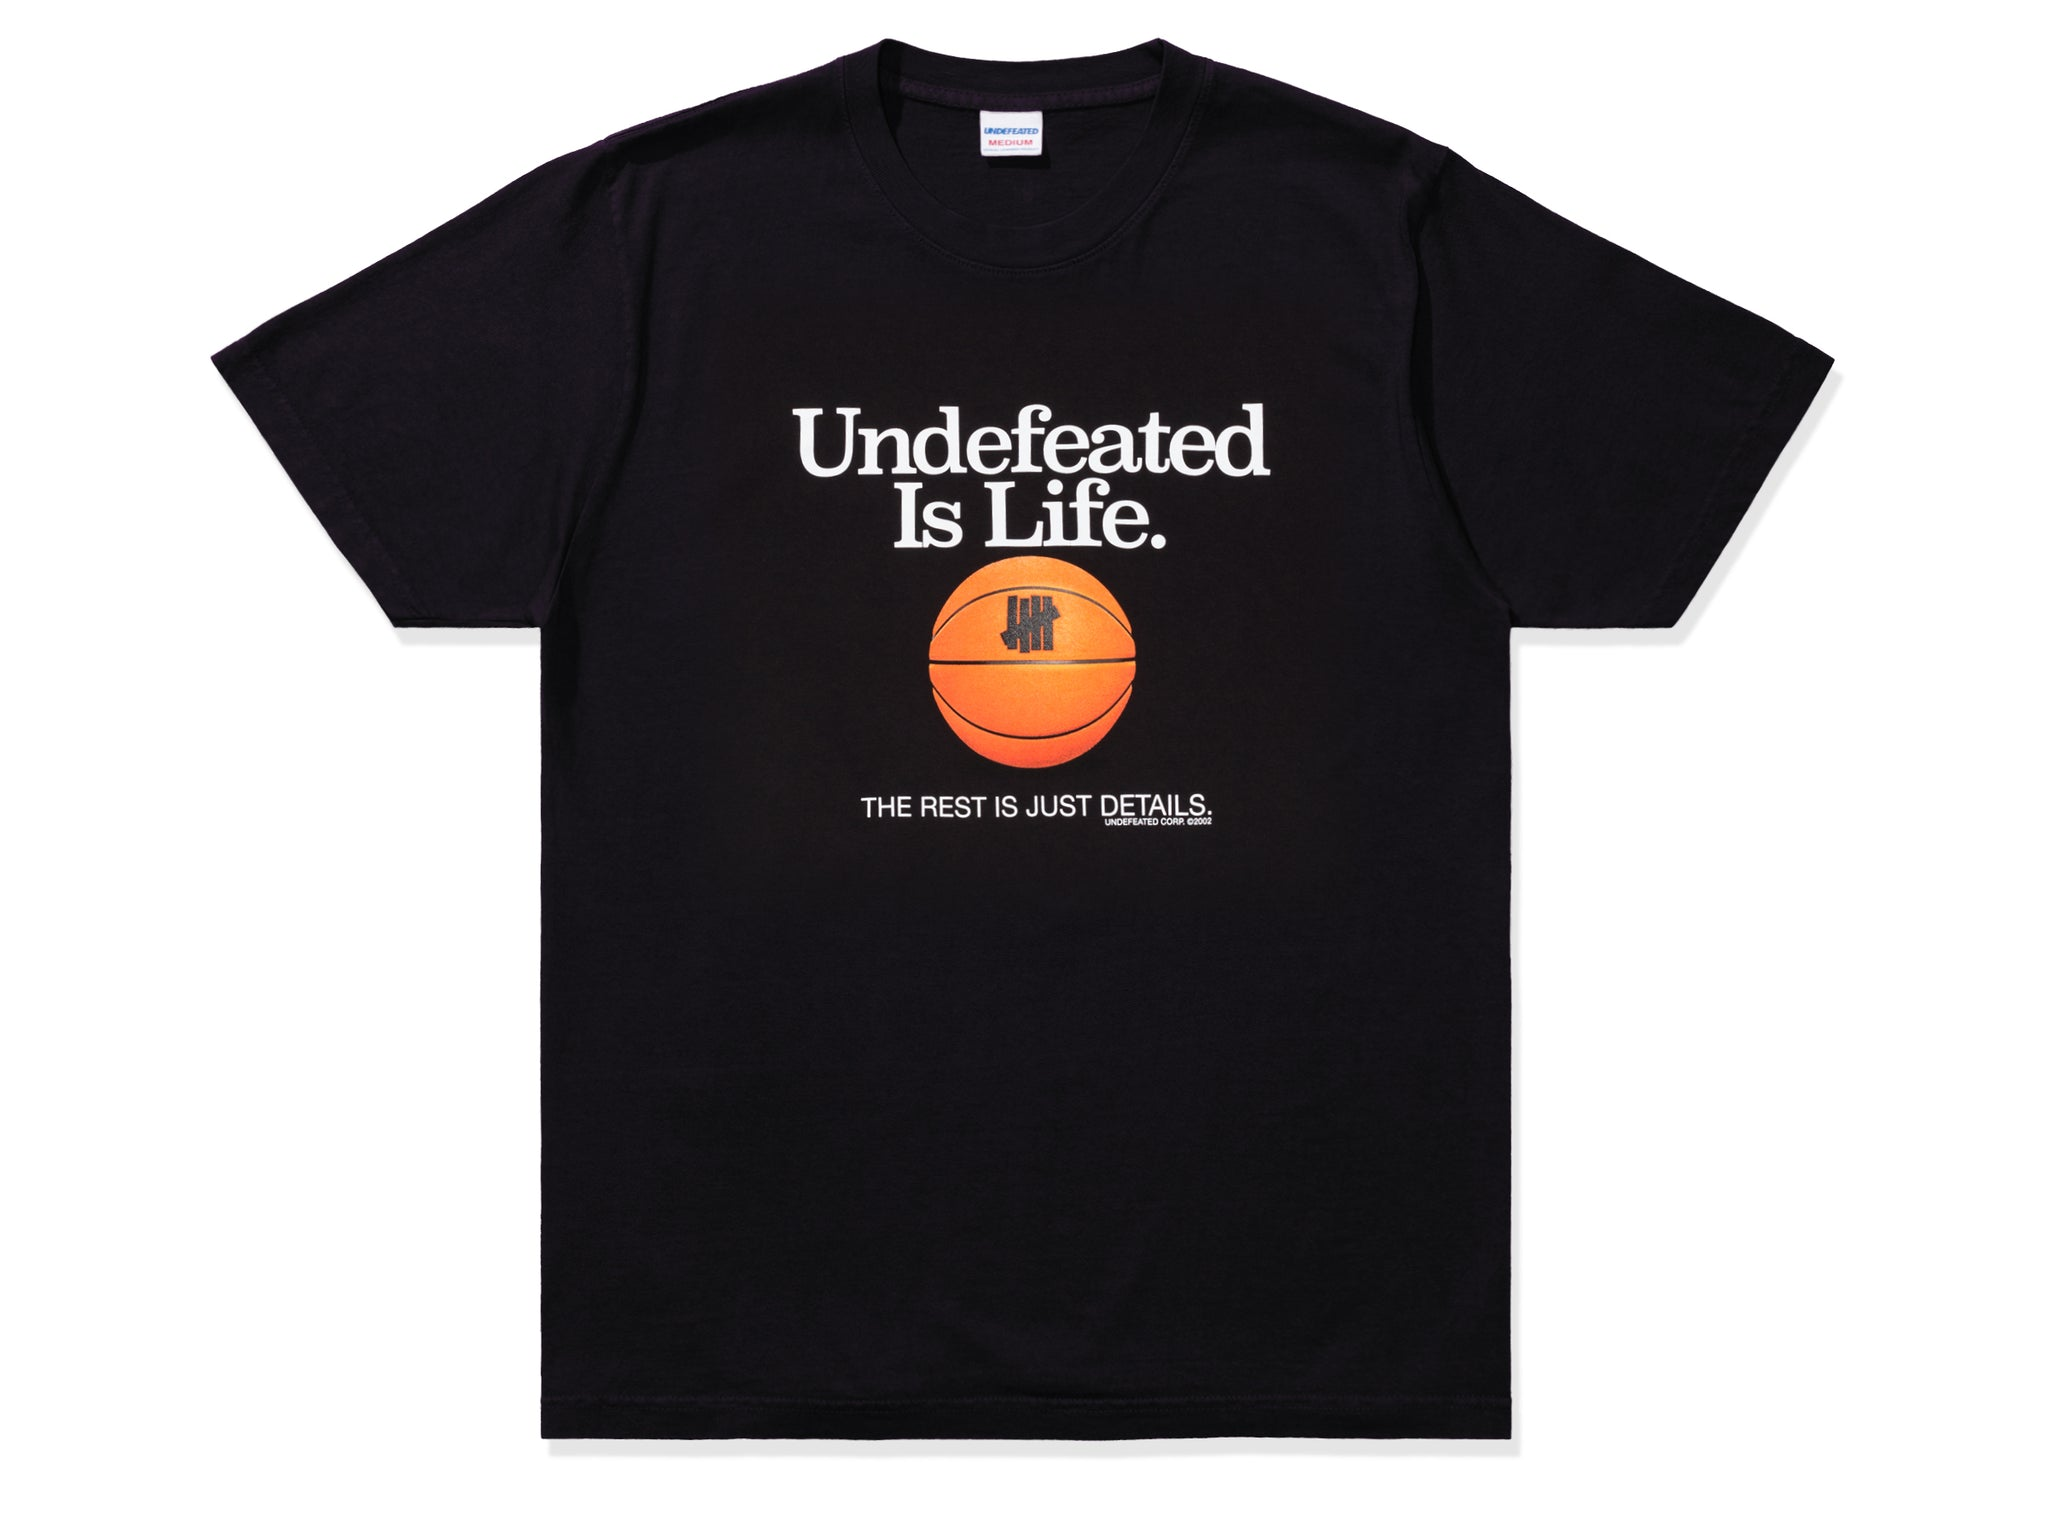 UNDEFEATED IS LIFE TEE